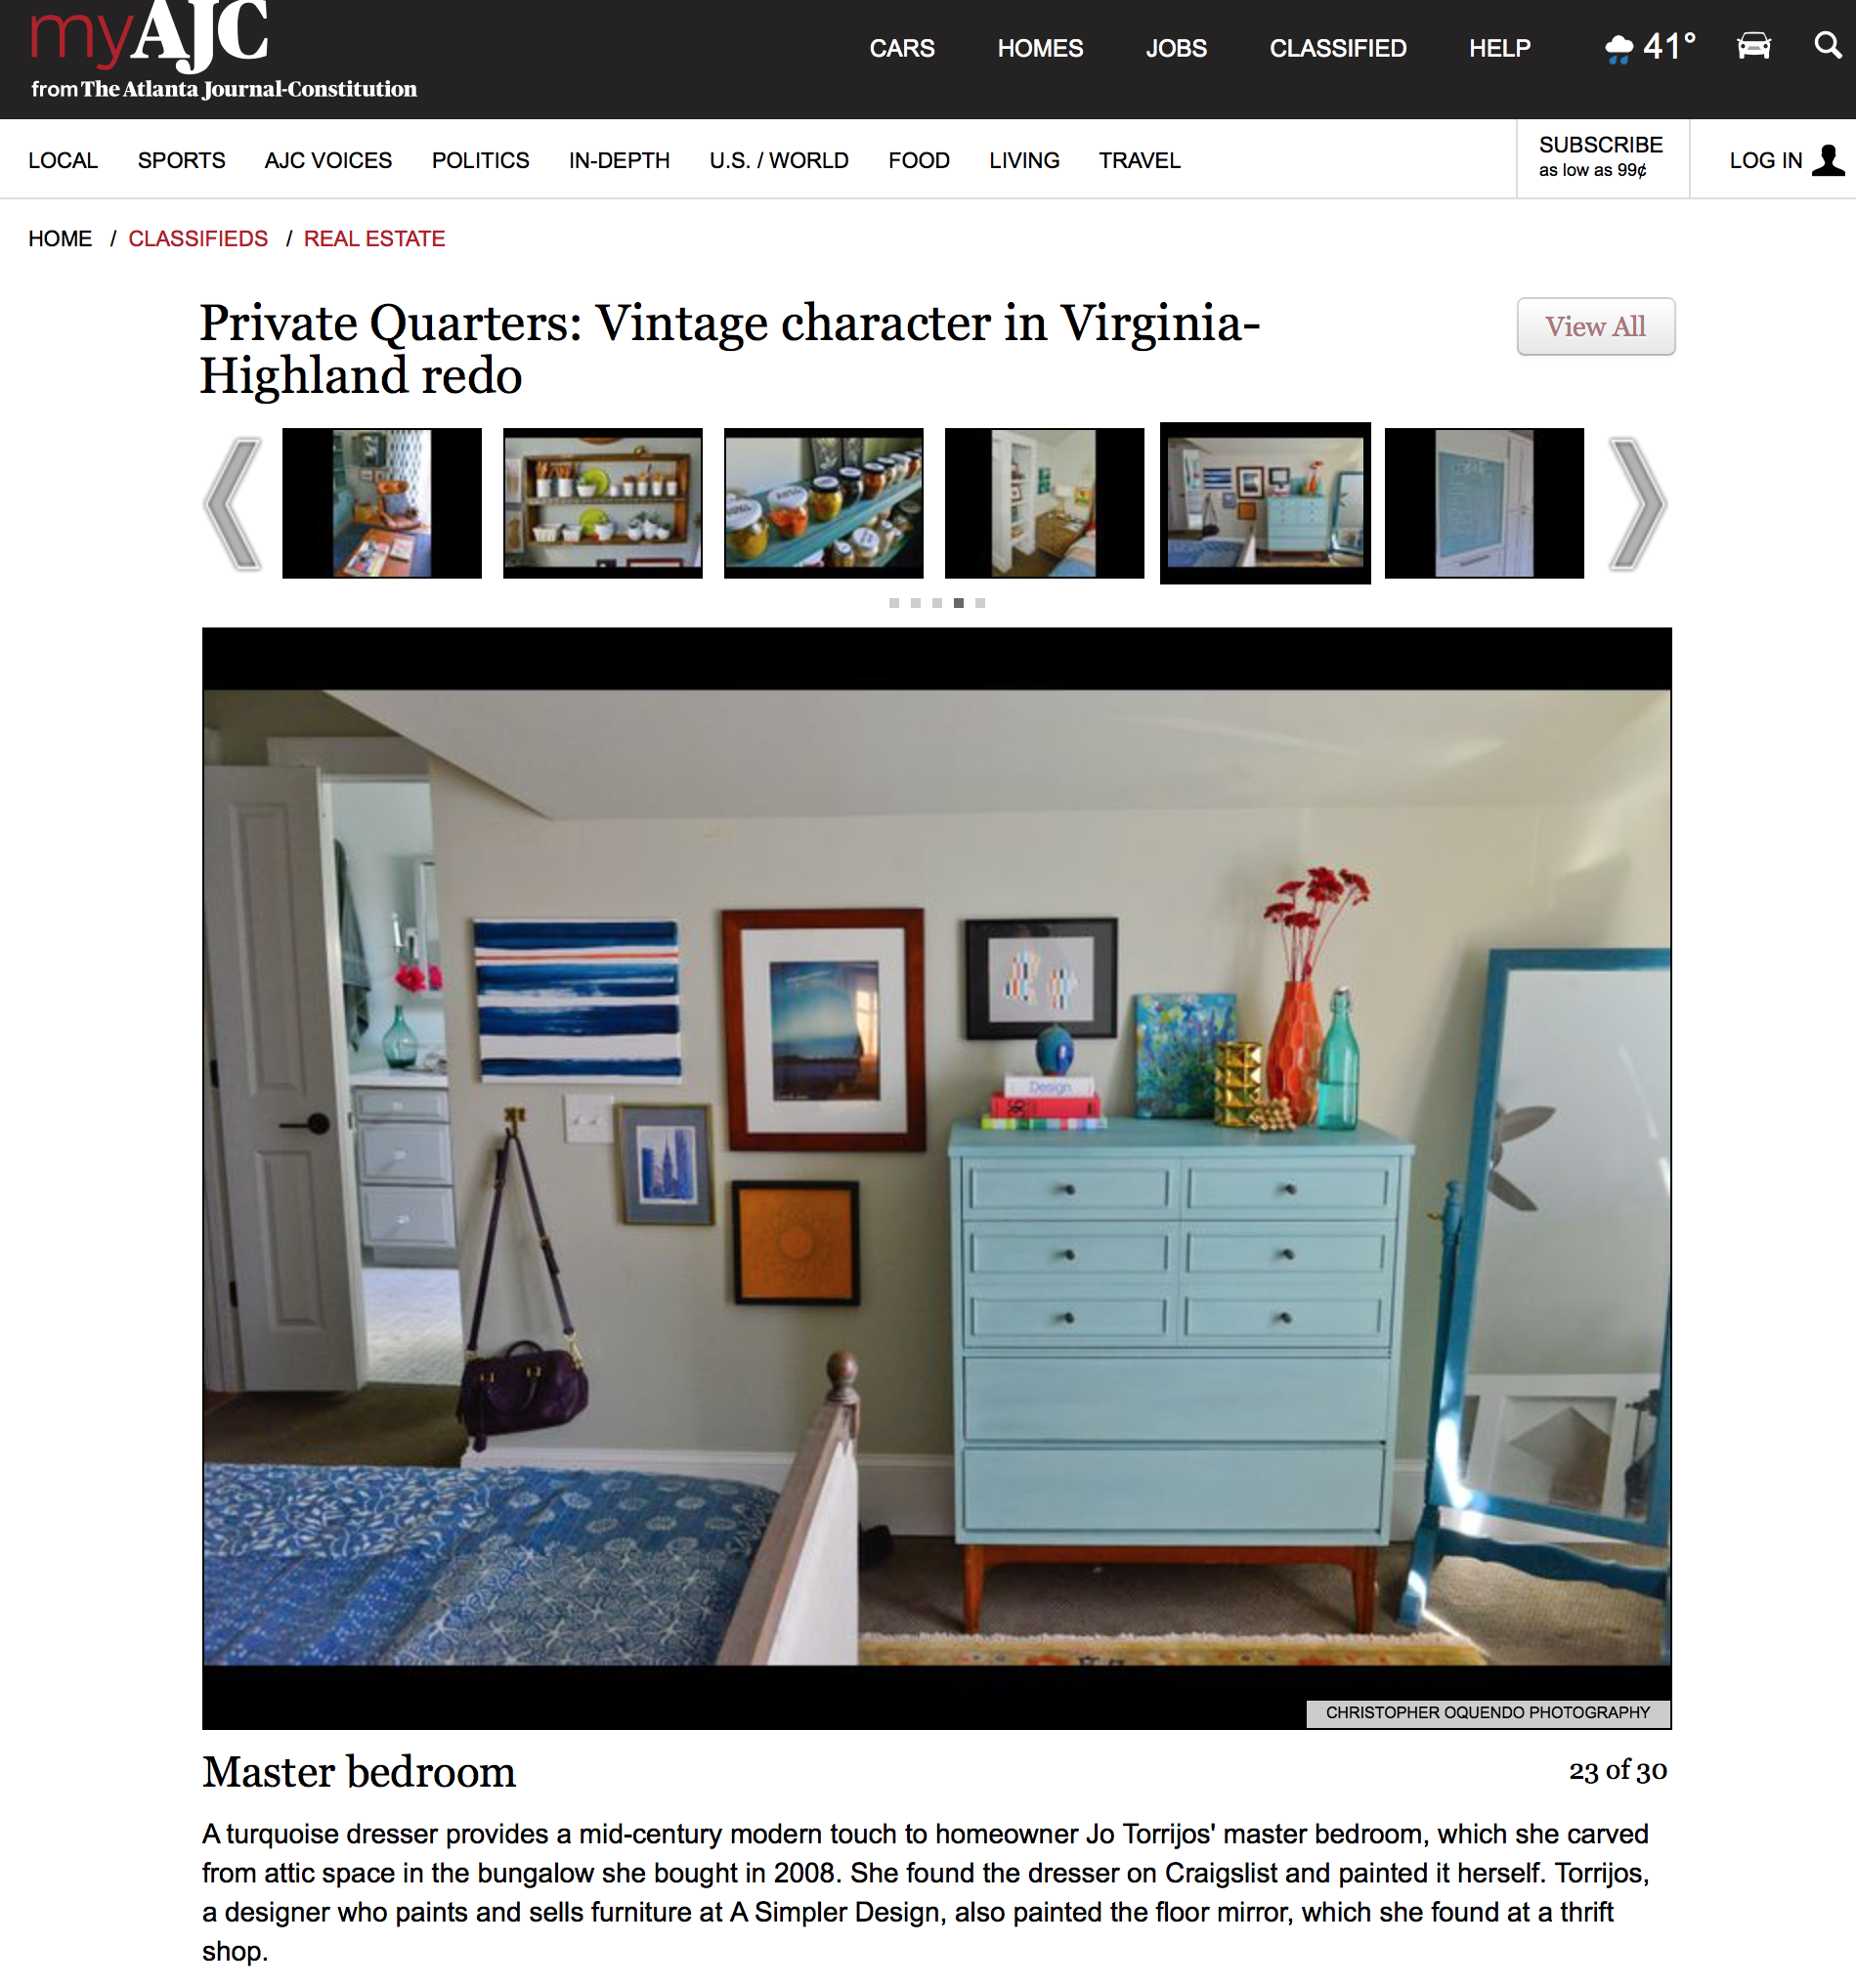 jo-torrijos-a-simpler-design-atlanta-interior-design-virginia-highland-bungalow-ajc-24.png